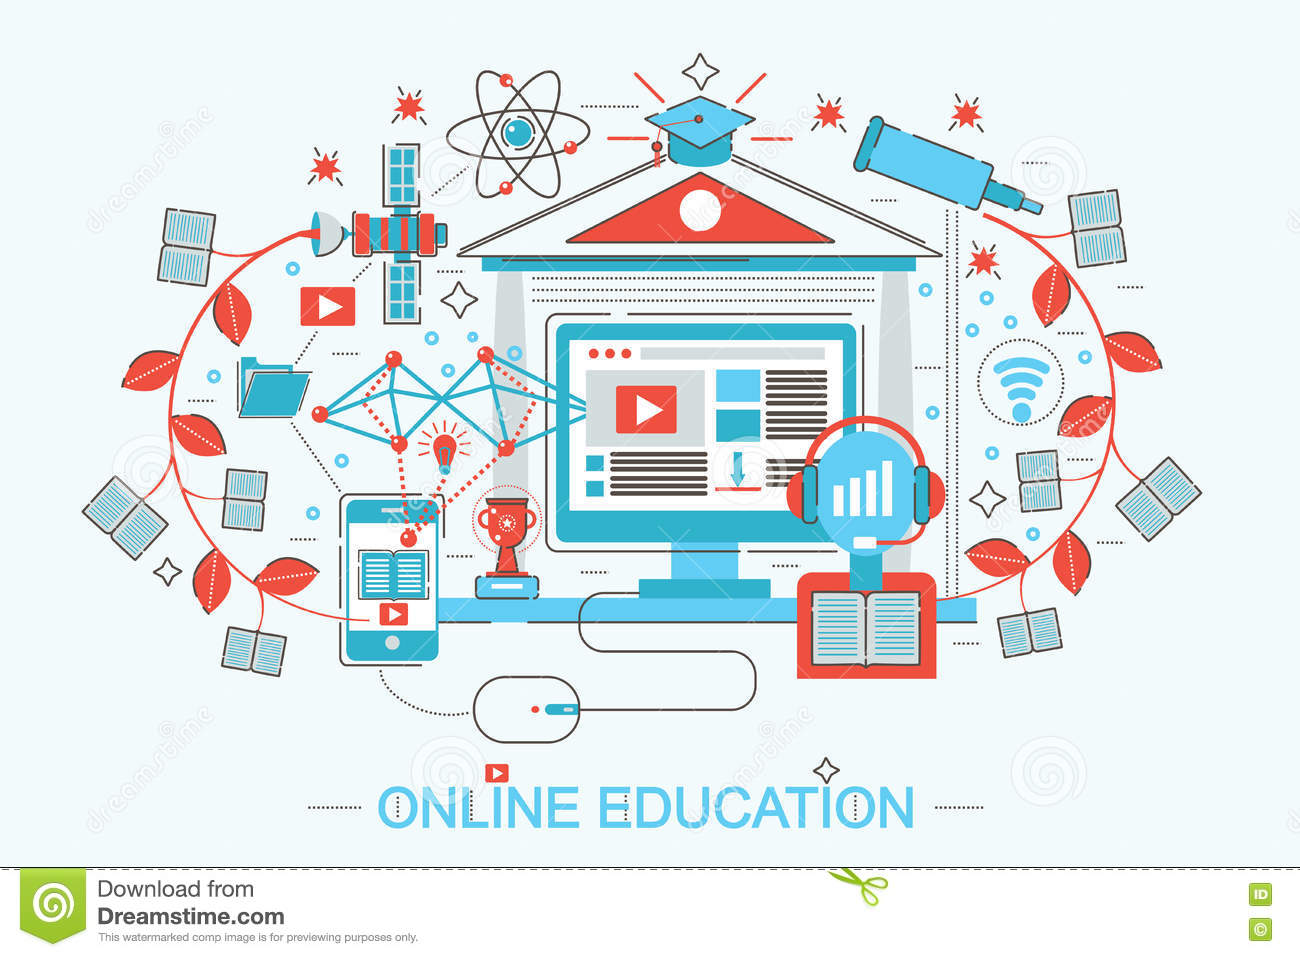 E learning poster designs -  Design Distance Online Education And E Learning Concept Download